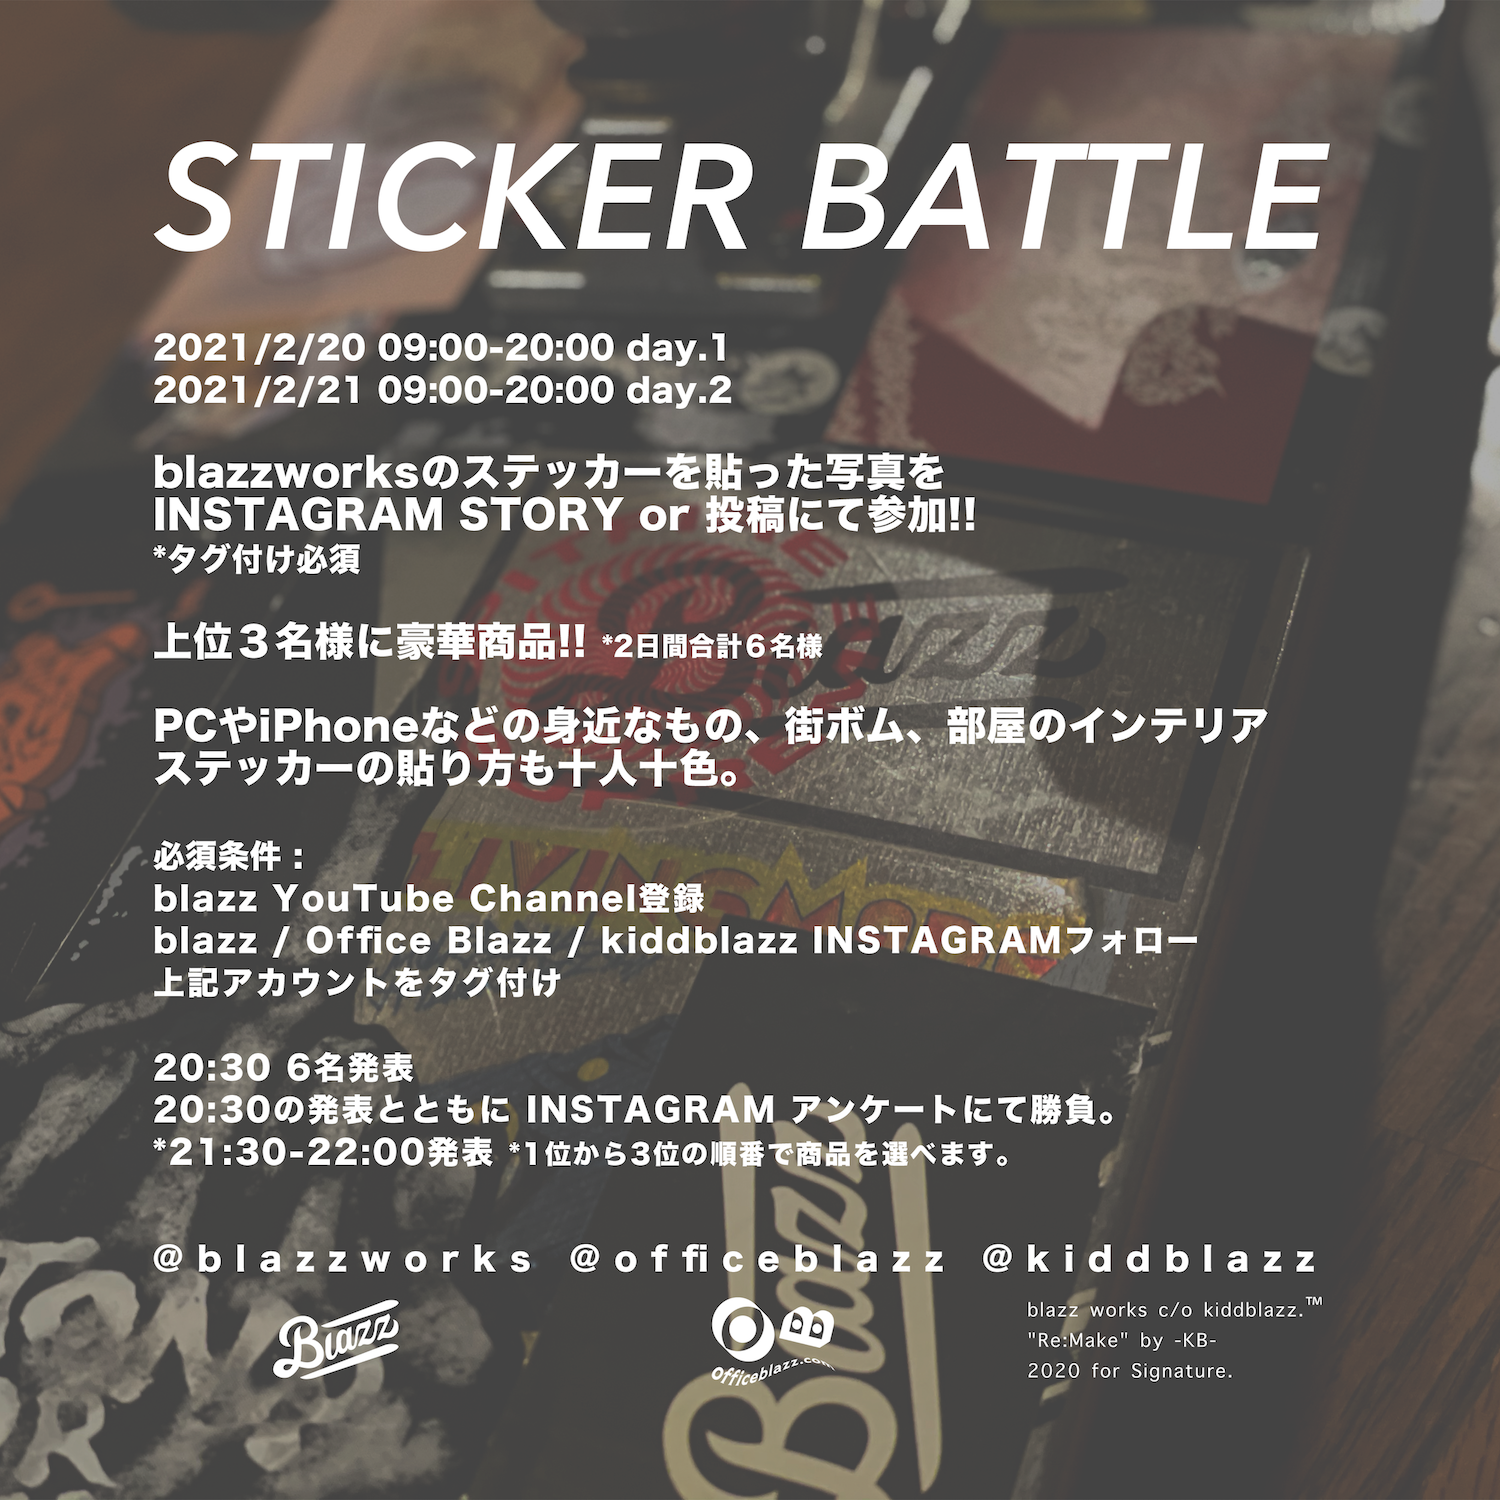 STICKER BATTLE 2021